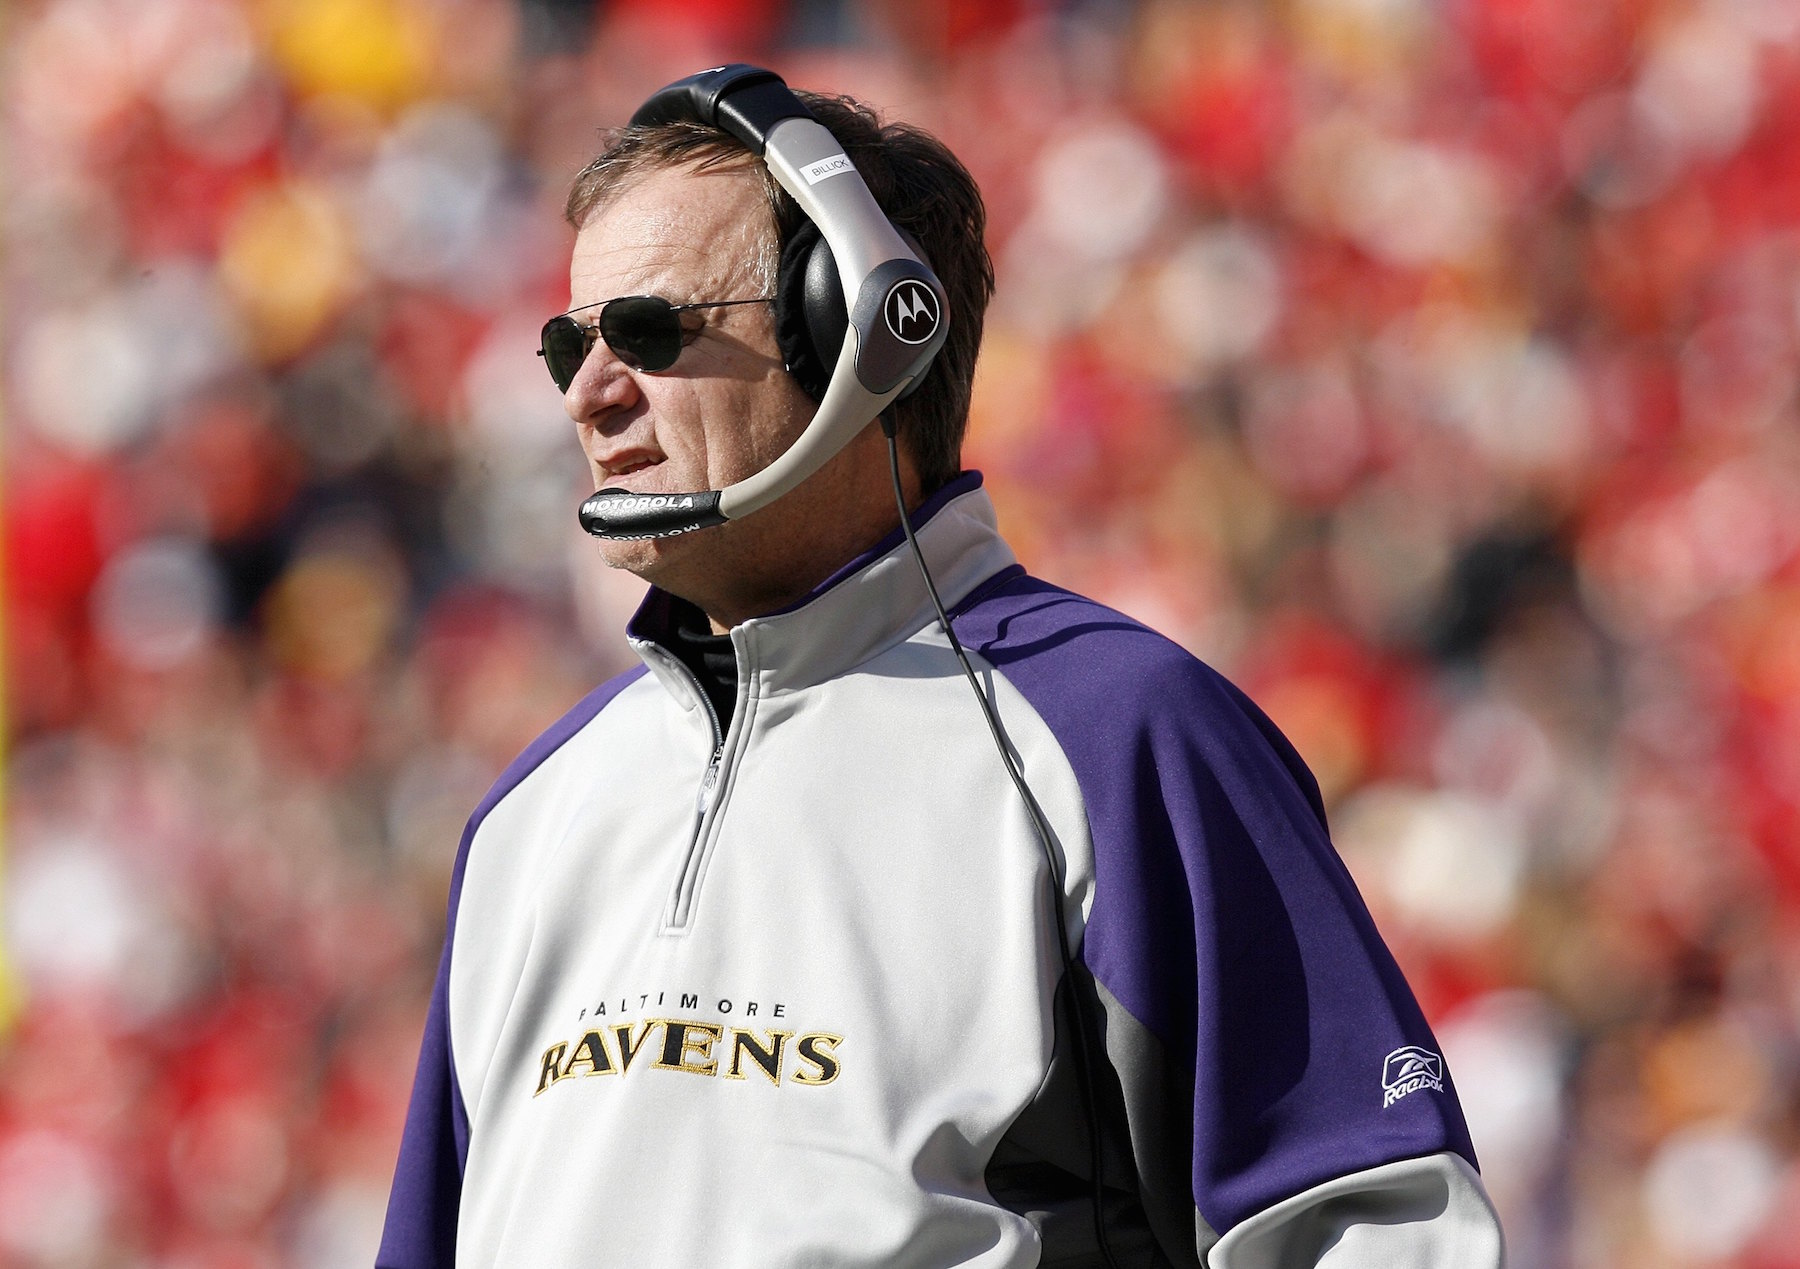 KANSAS CITY, MO - DECEMBER 10: Head coach Brian Billick of the Baltimore Ravens looks on during the game against the Kansas City Chiefs at Arrowhead Stadium December 10, 2006 in Kansas City, Missouri. The Ravens beat the Chiefs 20-10. (Photo by Dilip Vishwanat/Getty Images)